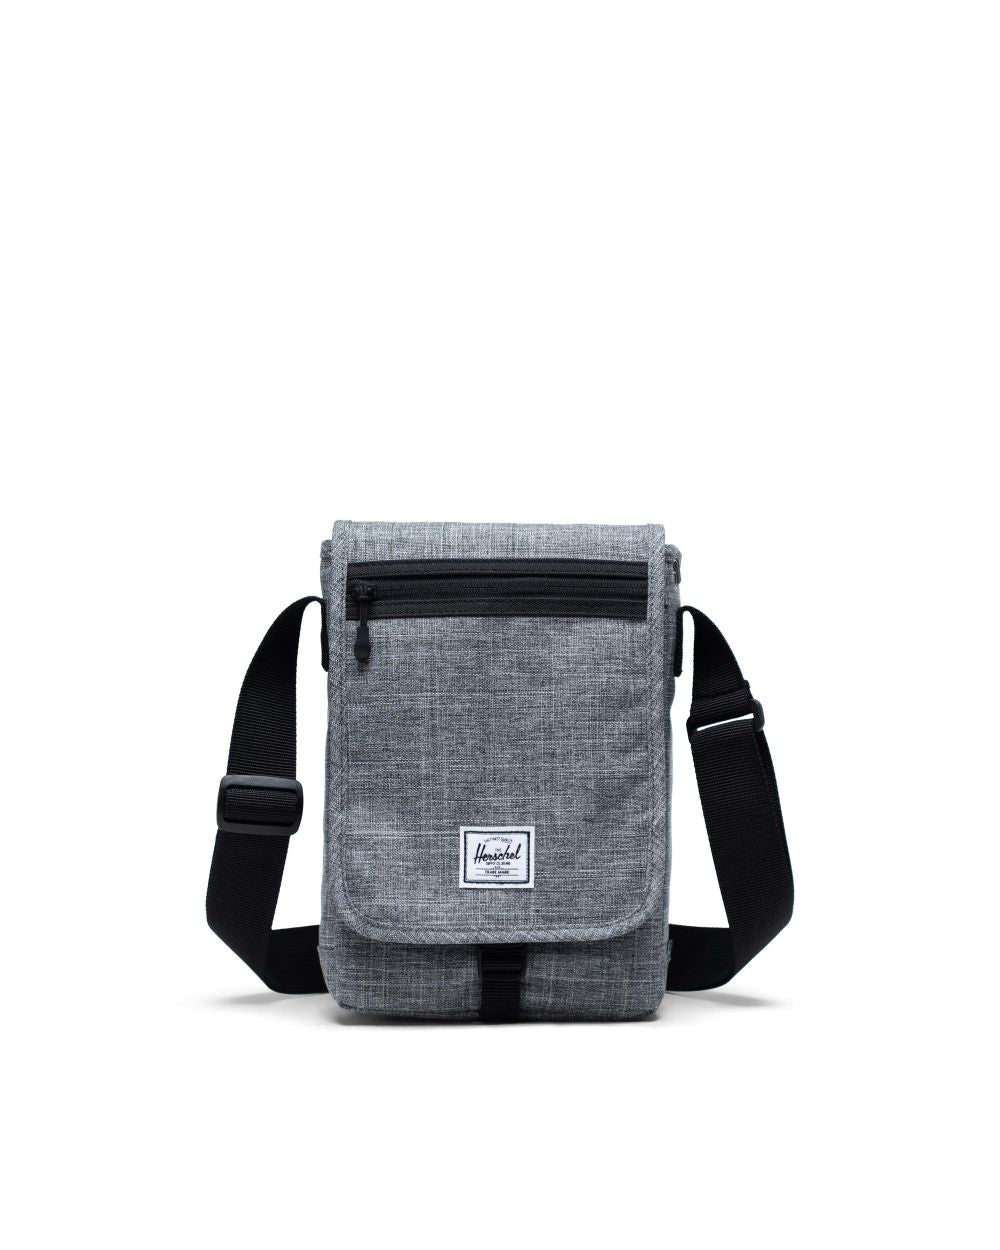 Herschel Lane Small Messenger (10689)